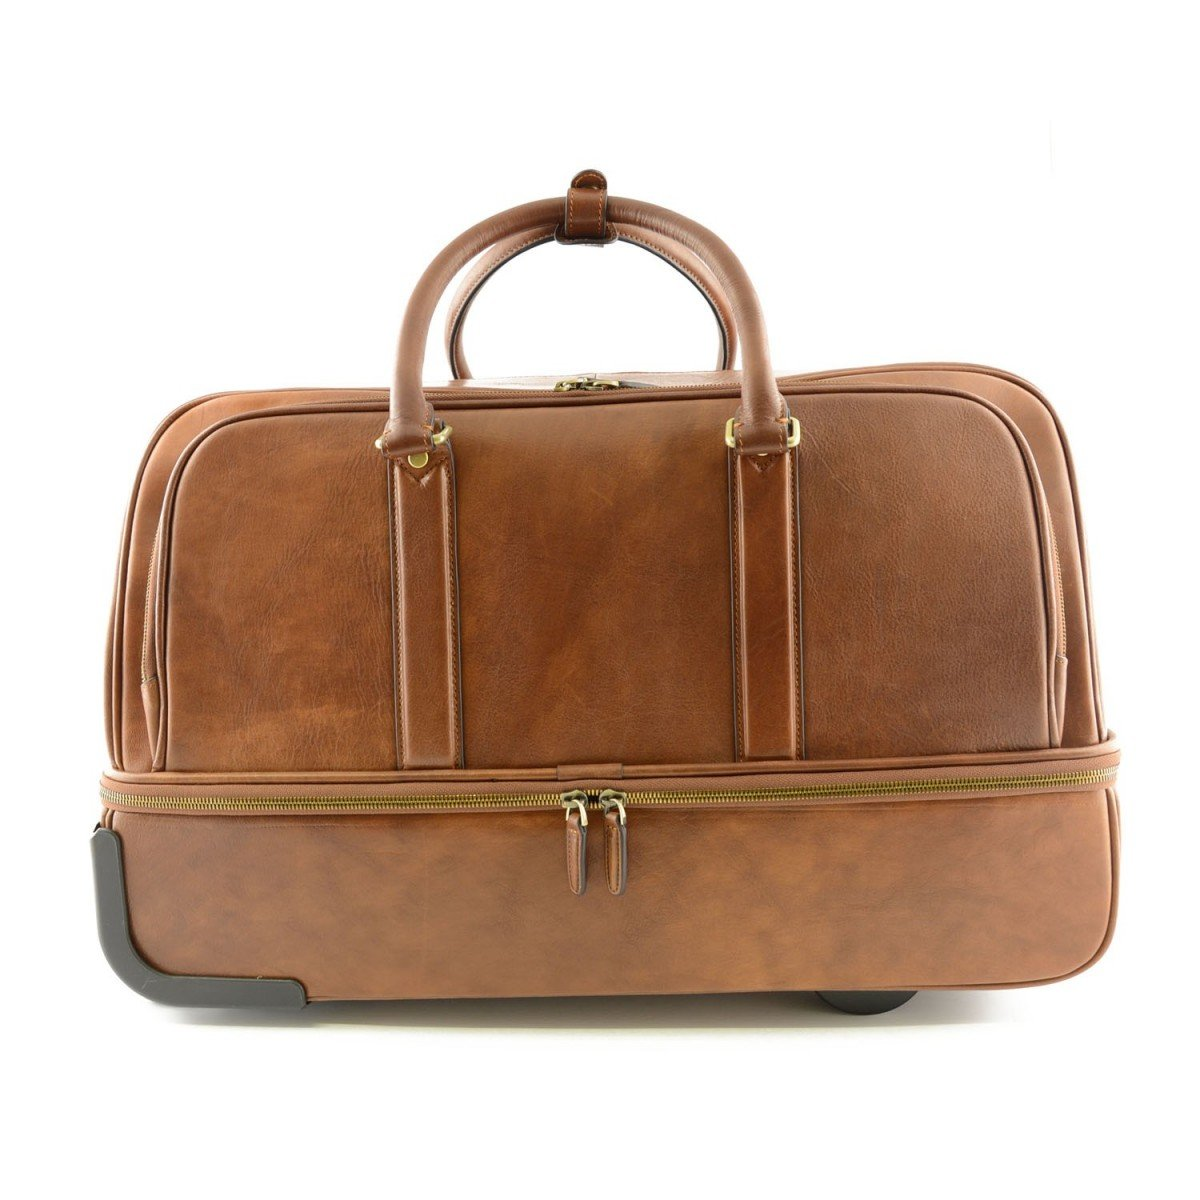 Made In Italy Leather Trolley Bag In With Laptop Sleeve Color Brown - Travel Bag B016NRX3M0